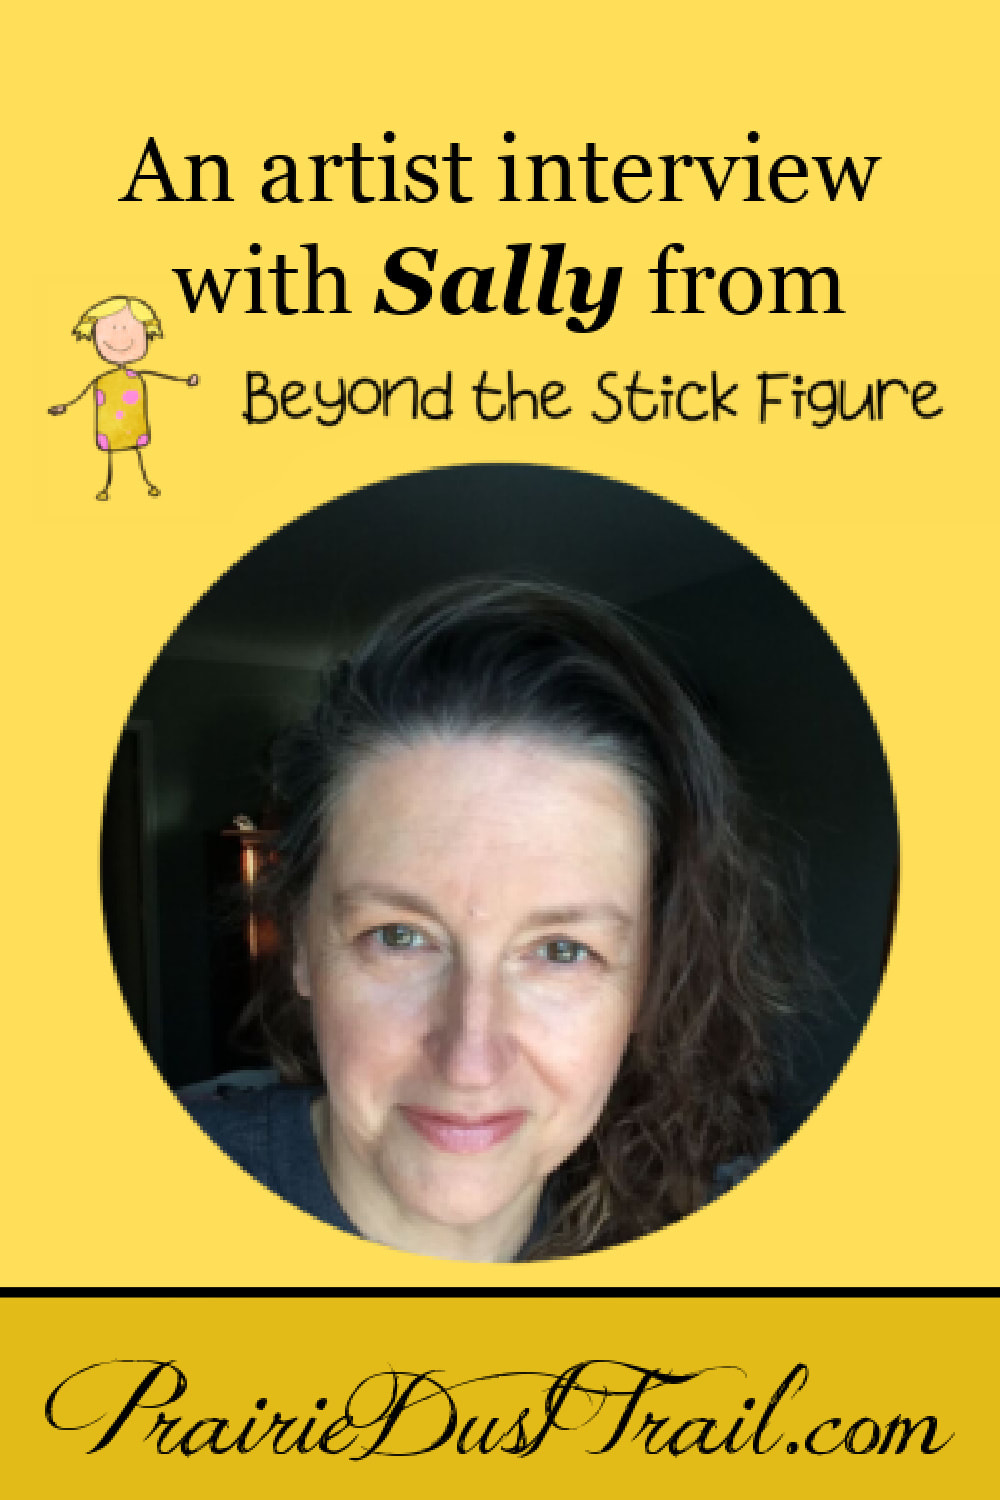 From excellent 2nd-hand finds, felt-tipped pens and black thumb gardening to our love for encouraging the creativity of children, Sally is definitely a kindred spirit. I hope you've enjoyed getting to know more about her. If art is something you'd like to learn more yourself or you need help teaching your children, I HIGHLY encourage you to join the free 14 day trial of the Beyond the Stick Figure course. This course is for ANY age. With all the stress in the world today, the timing of this course is perfect. Art is an ultimate 'self-care' stress relief.